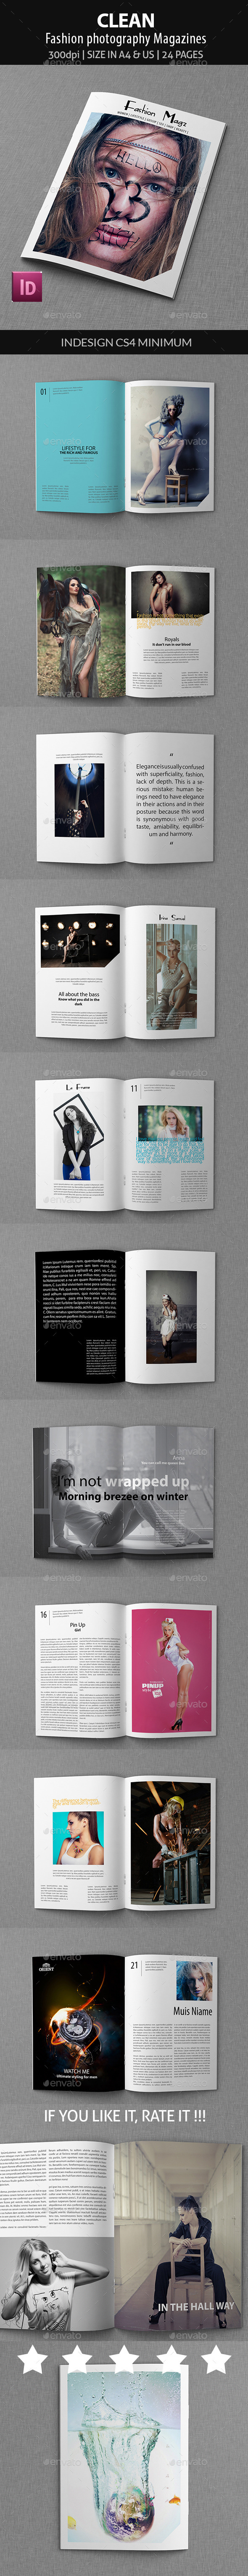 GraphicRiver Clean Fashion photography Magazines 9528862